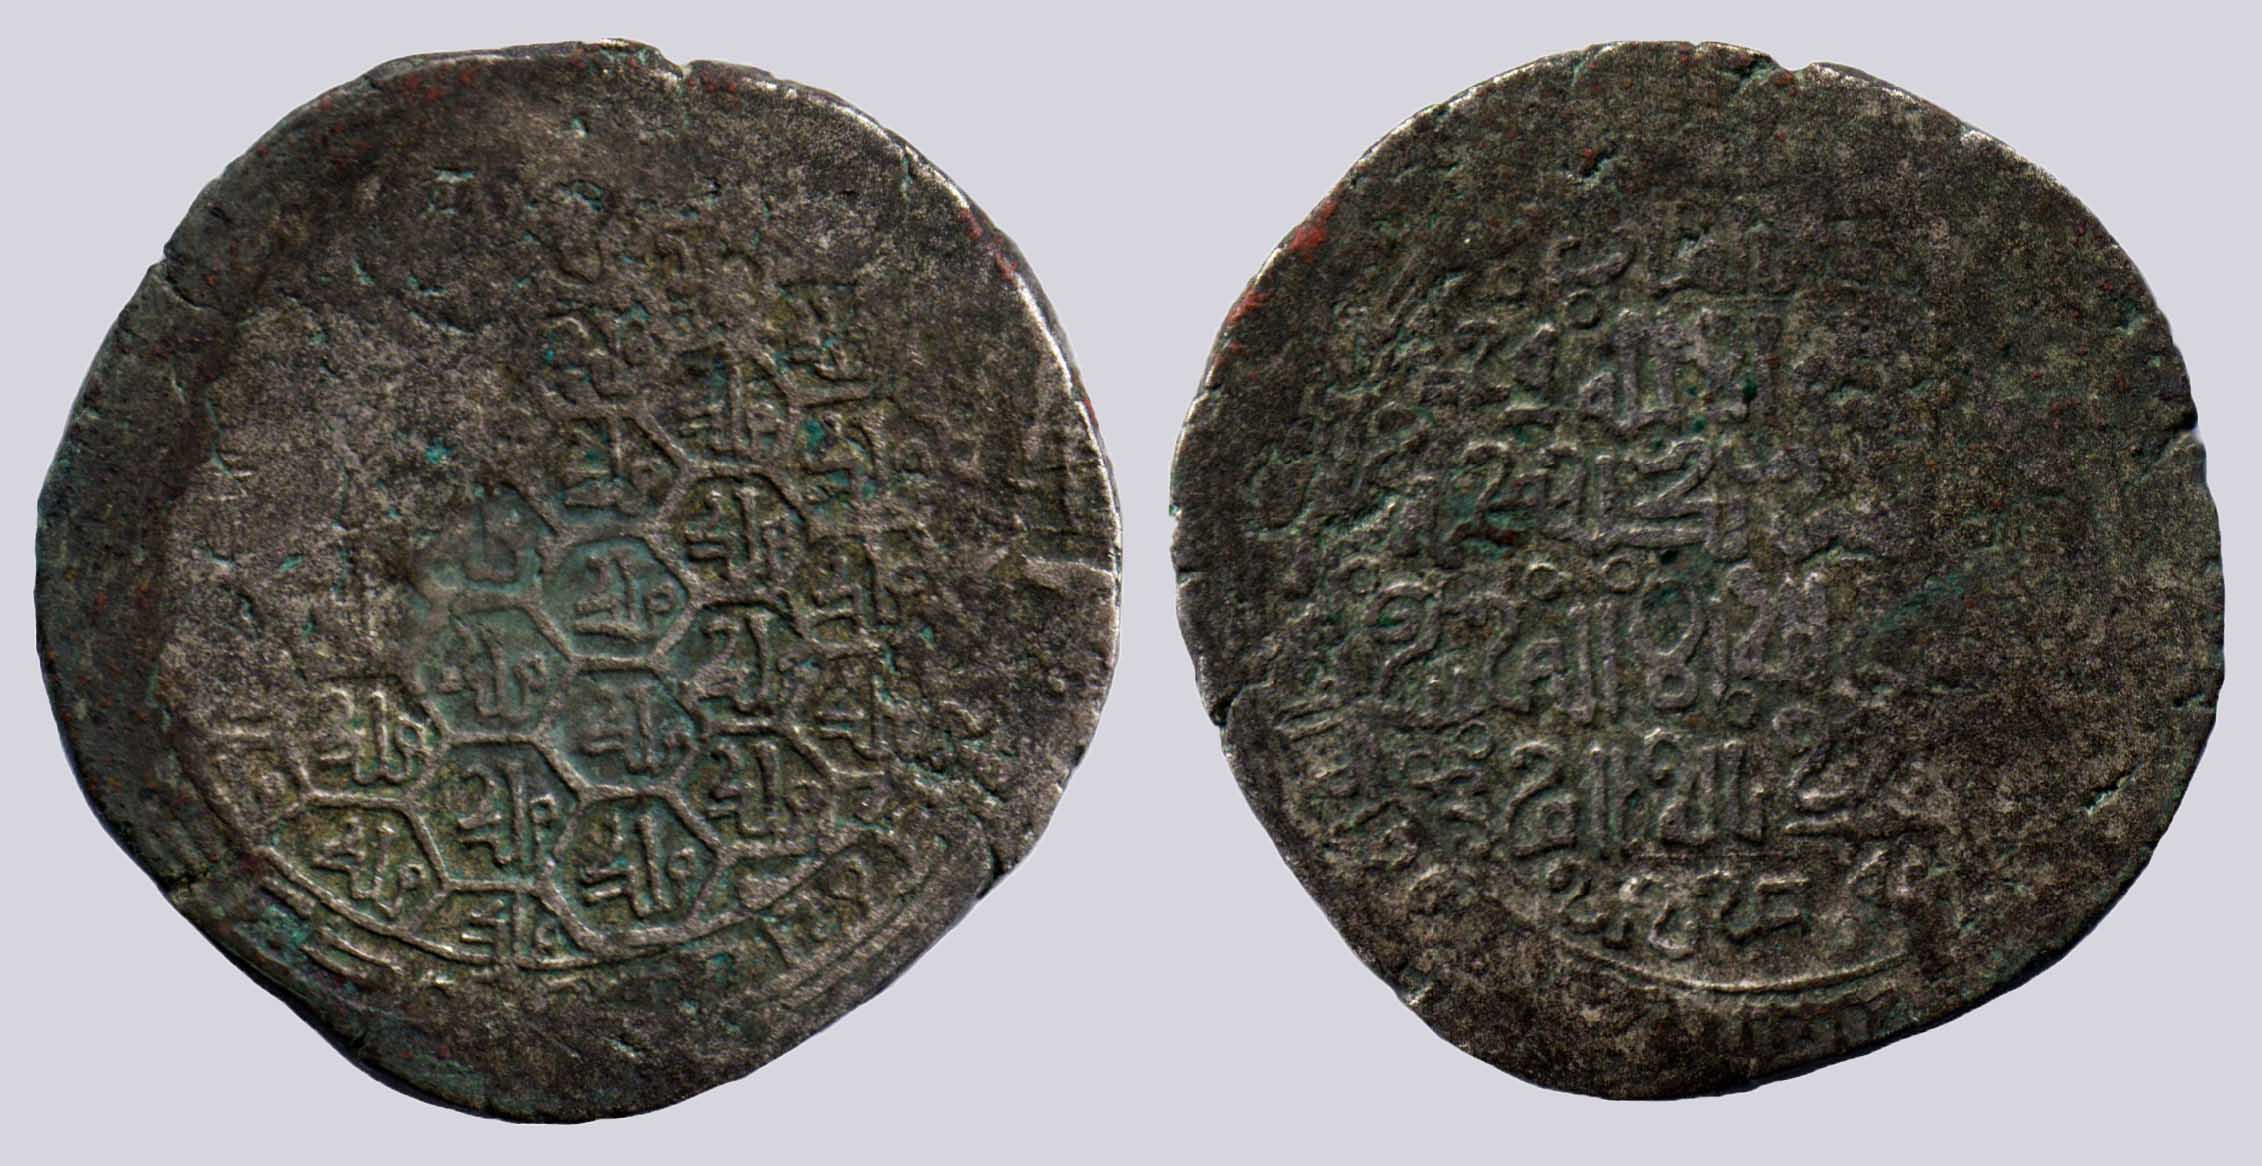 Ghorid, debased AV dinar, with words 'Malik' in honeycombs